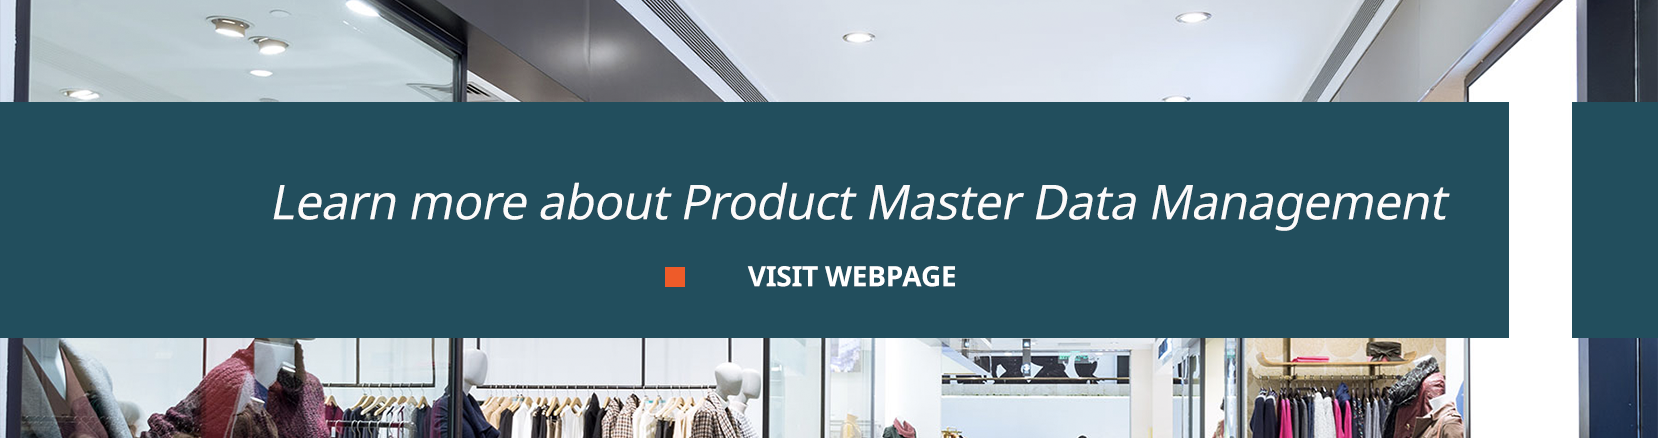 learn more about product master data management